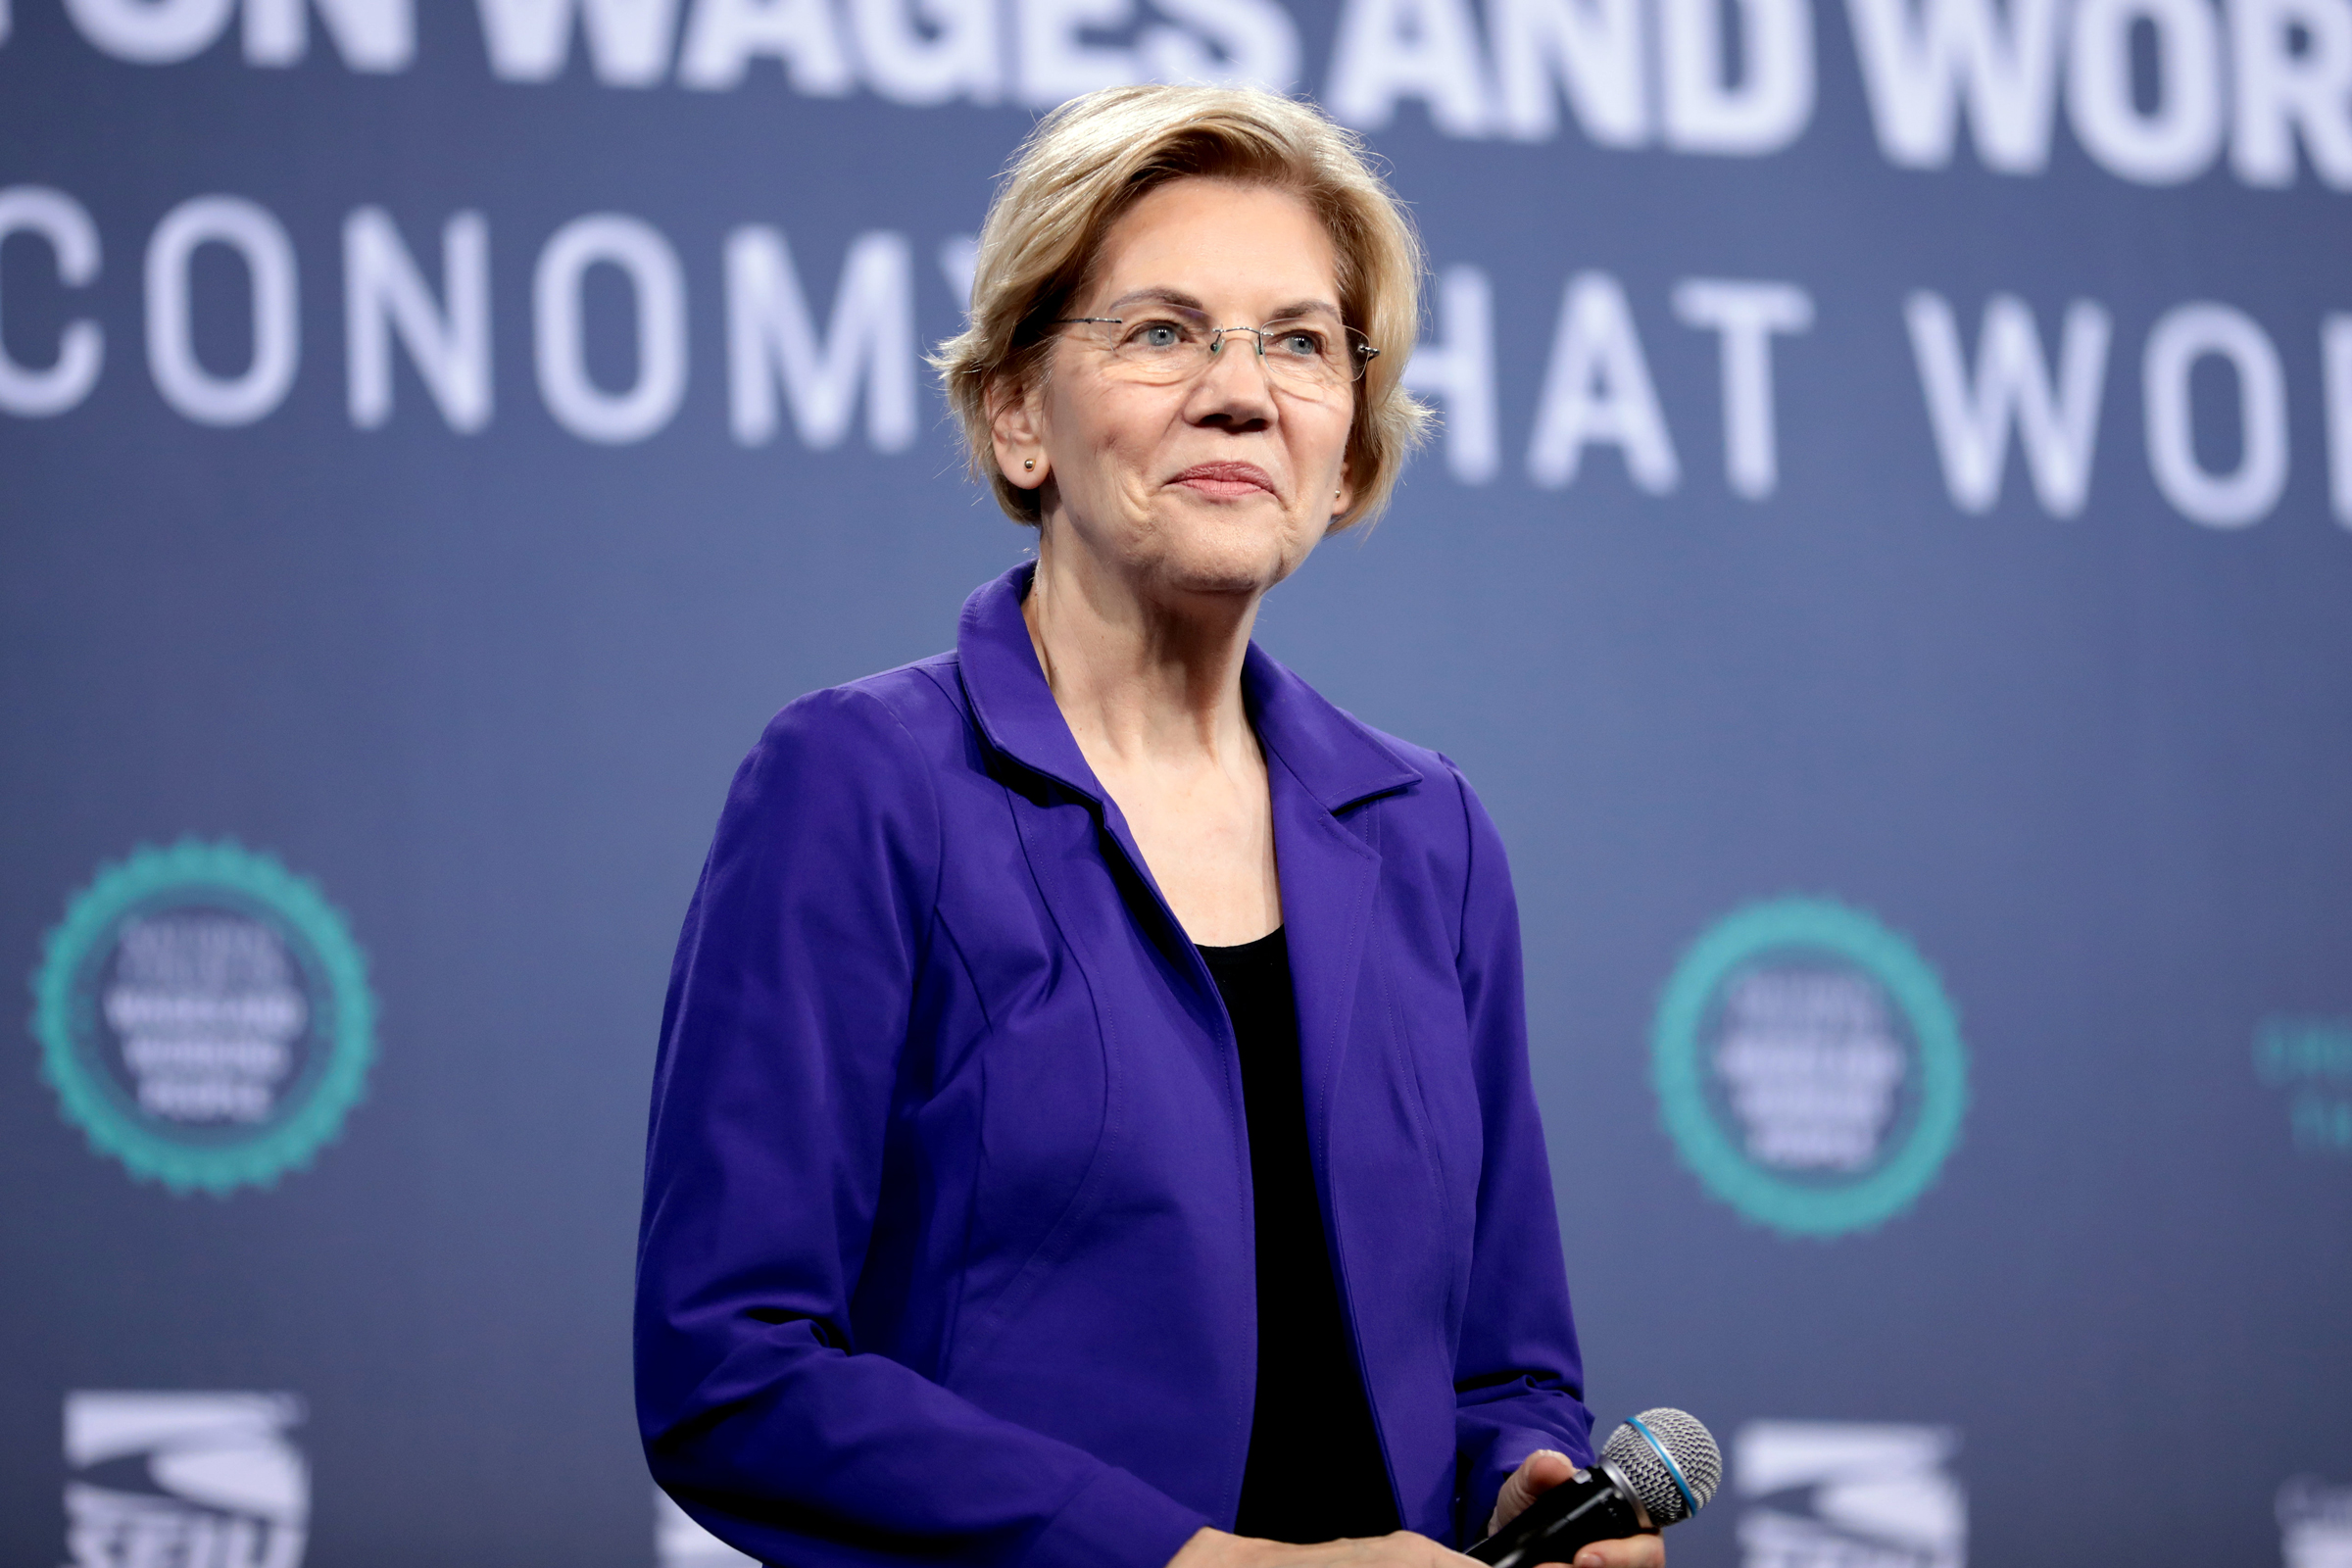 Elizabeth Warren, a white woman with short blond hair, stands, smiling, while holding a microphone.